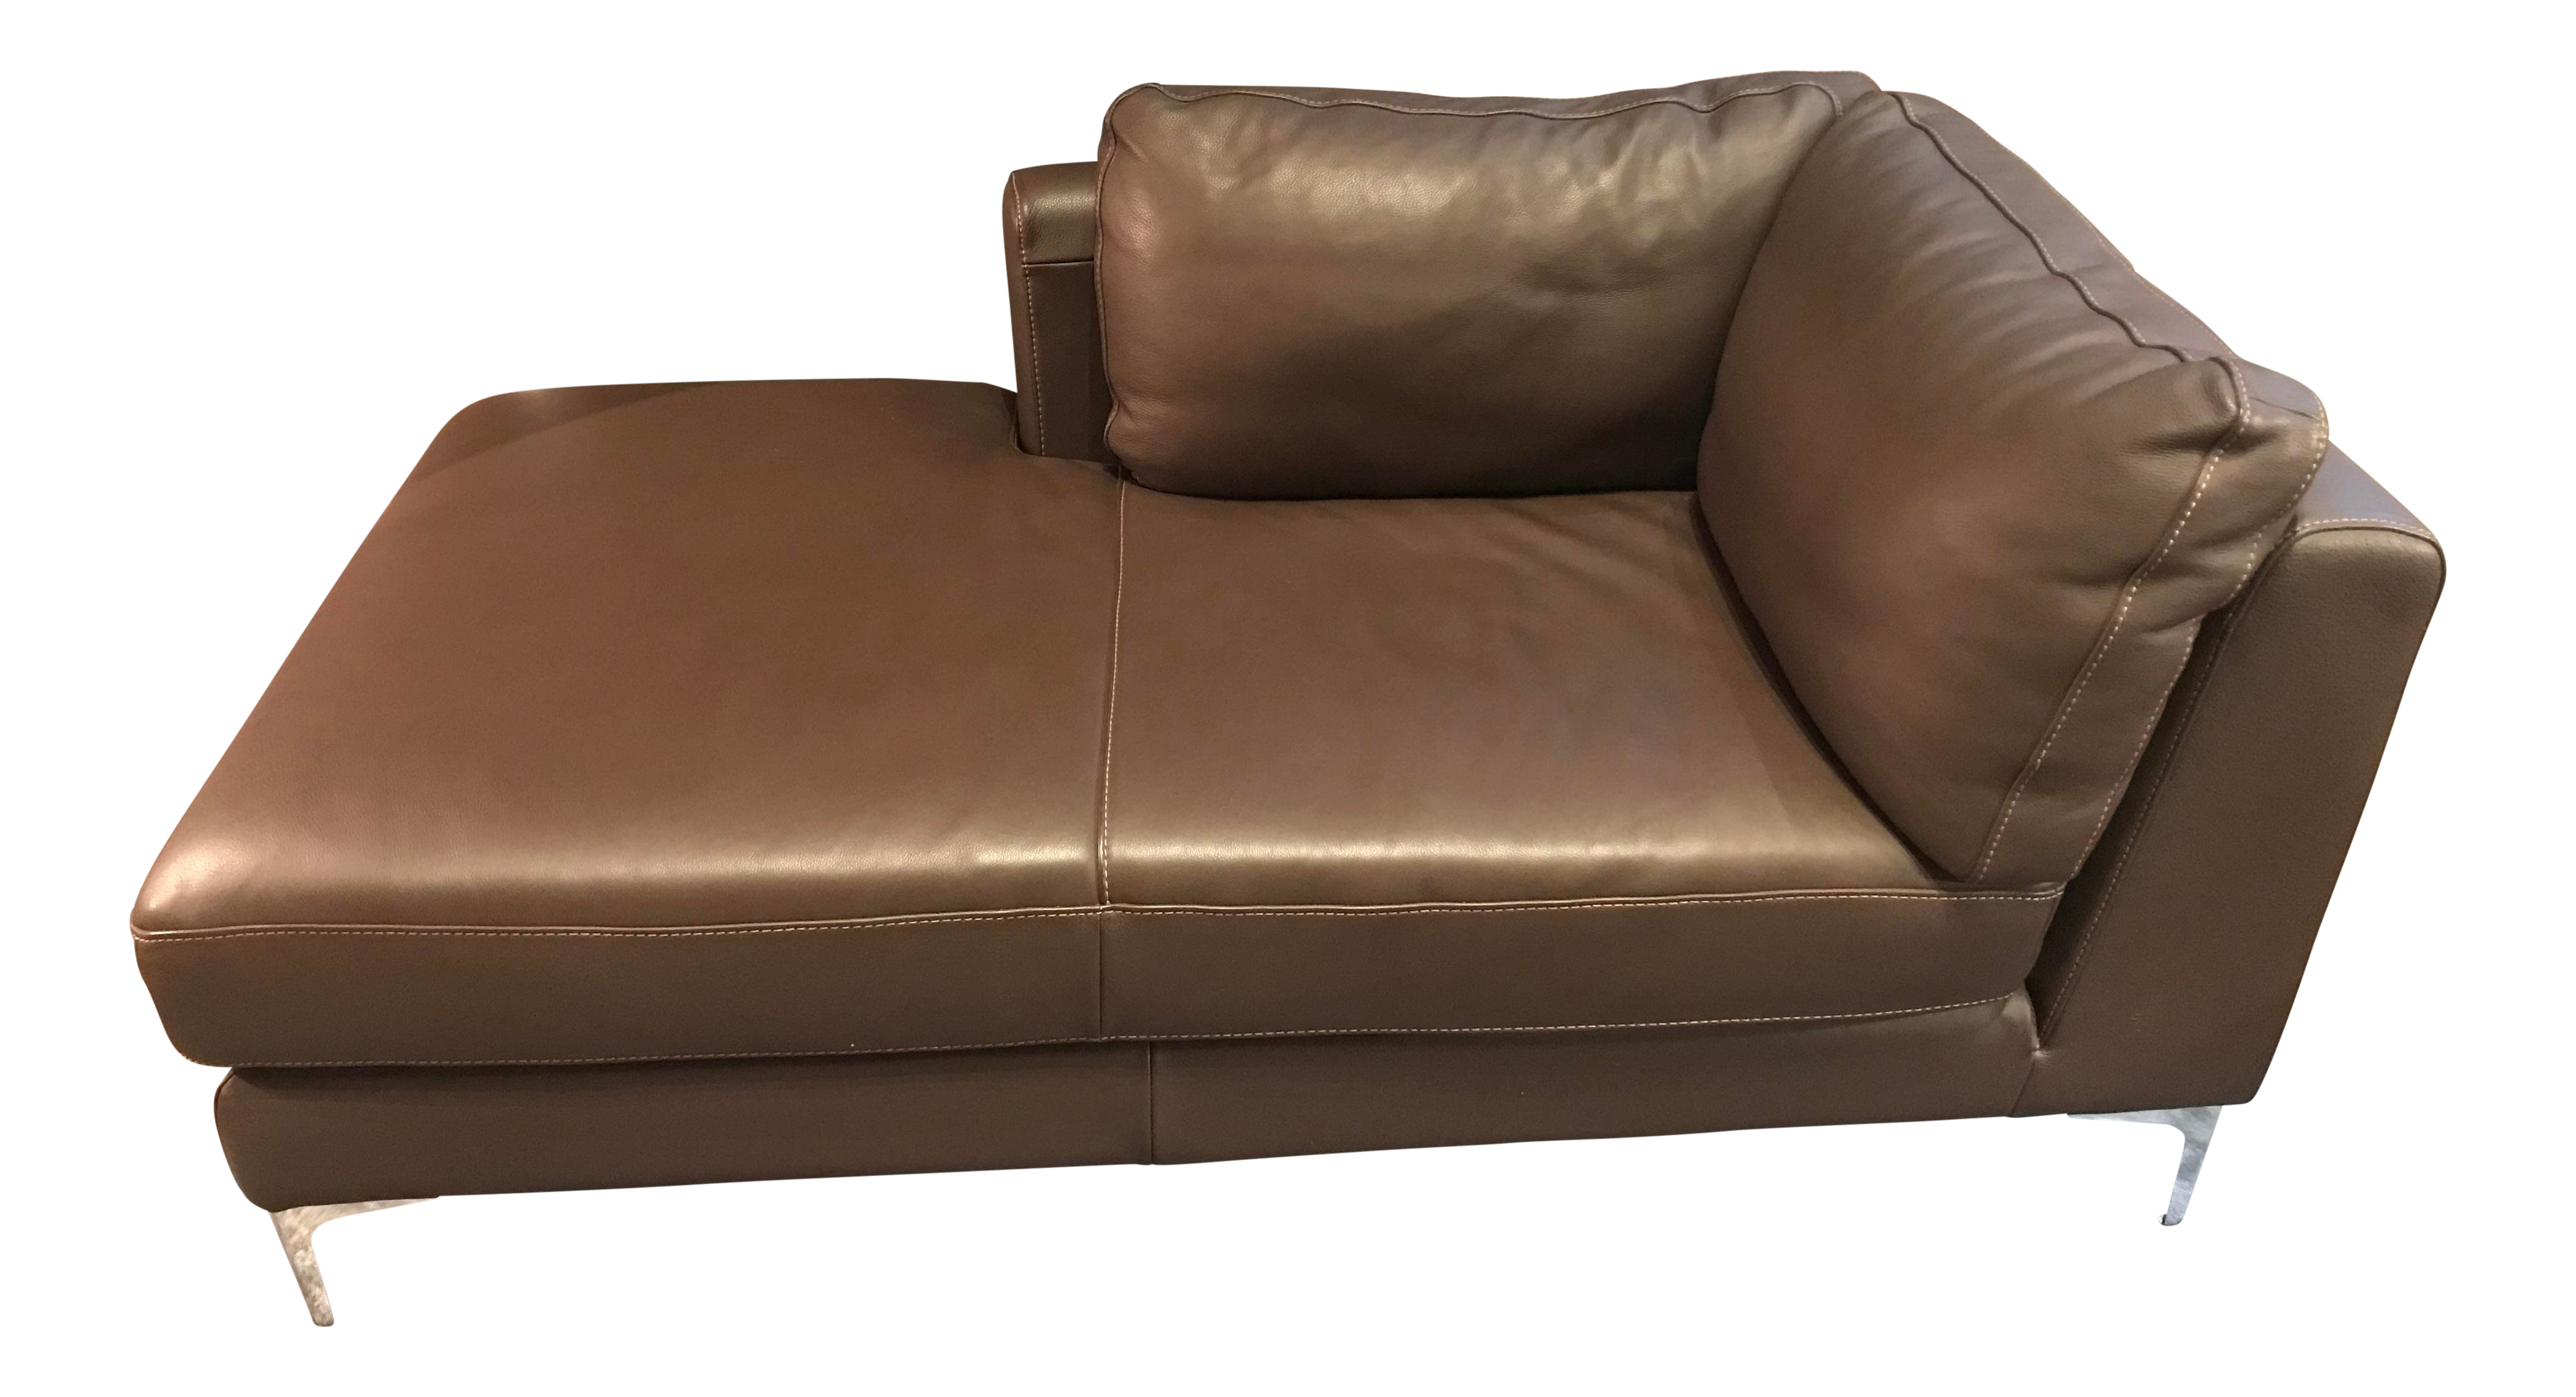 Contemporary Design Within Reach Chocolate Brown Leather Chaise